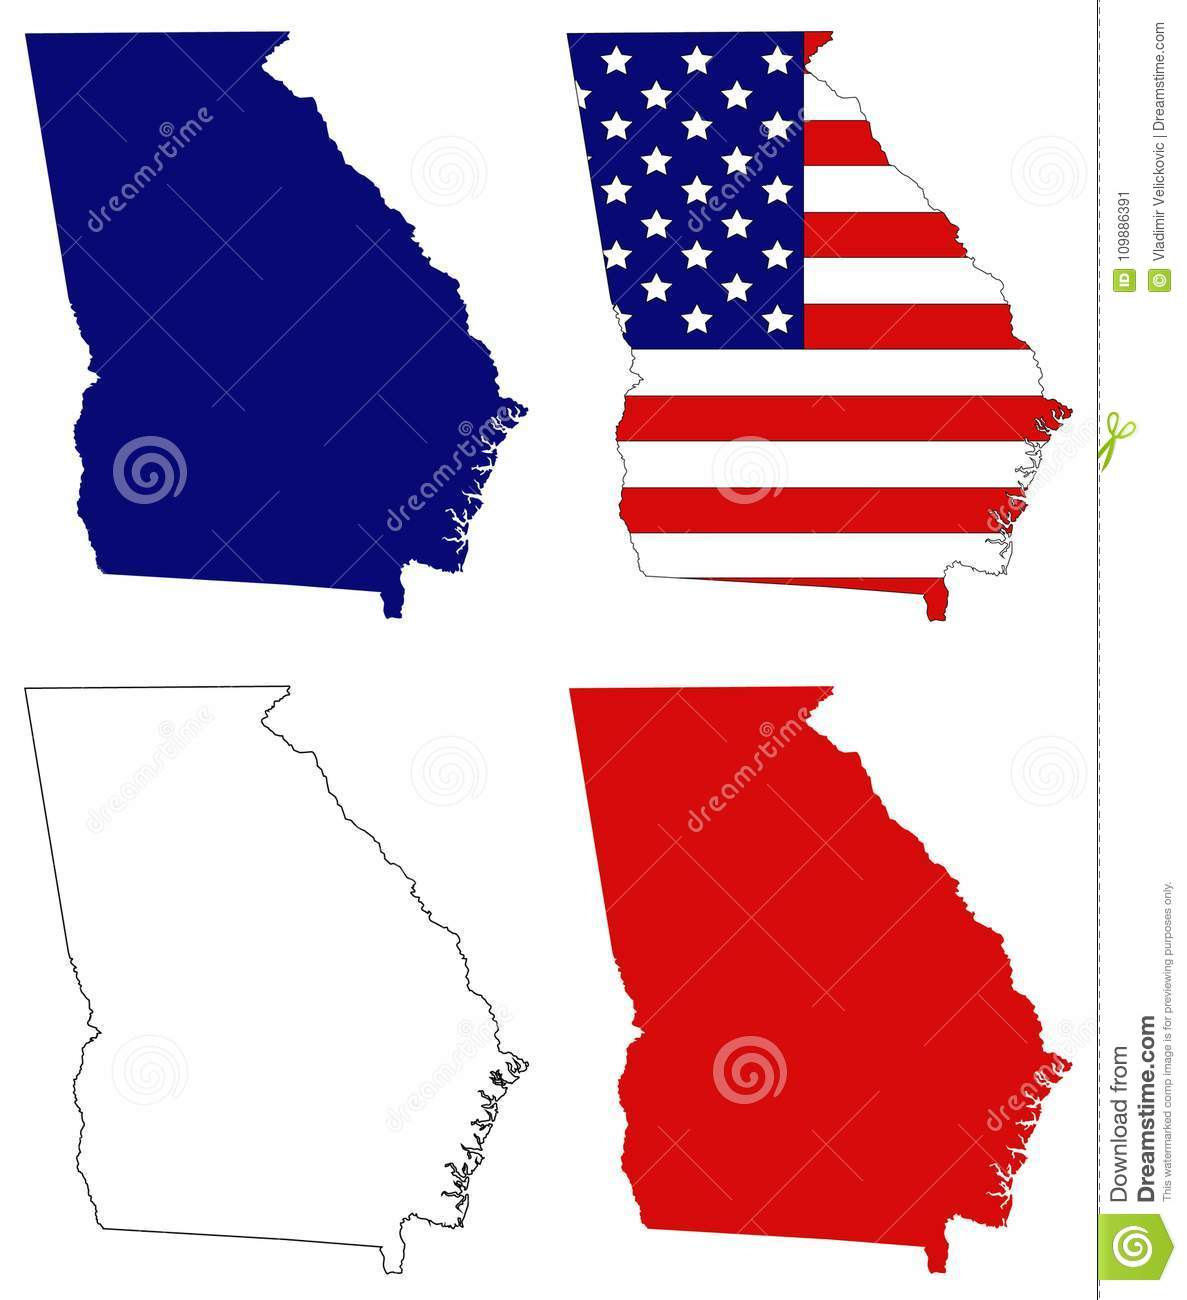 Georgia Map With USA Flag - State In The Southeastern United ... on georgia coat of arms usa, georgia people usa, georgia south america, georgia flag usa, georgia interesting places usa, georgia cartoon, north carolina, georgia state bird usa, ghost towns in georgia usa, south georgia usa, south carolina, home usa, georgia travel usa, georgia climate usa, georgia state america, georgia food usa, georgia history usa, new jersey, georgia city usa, new york, georgia borders,